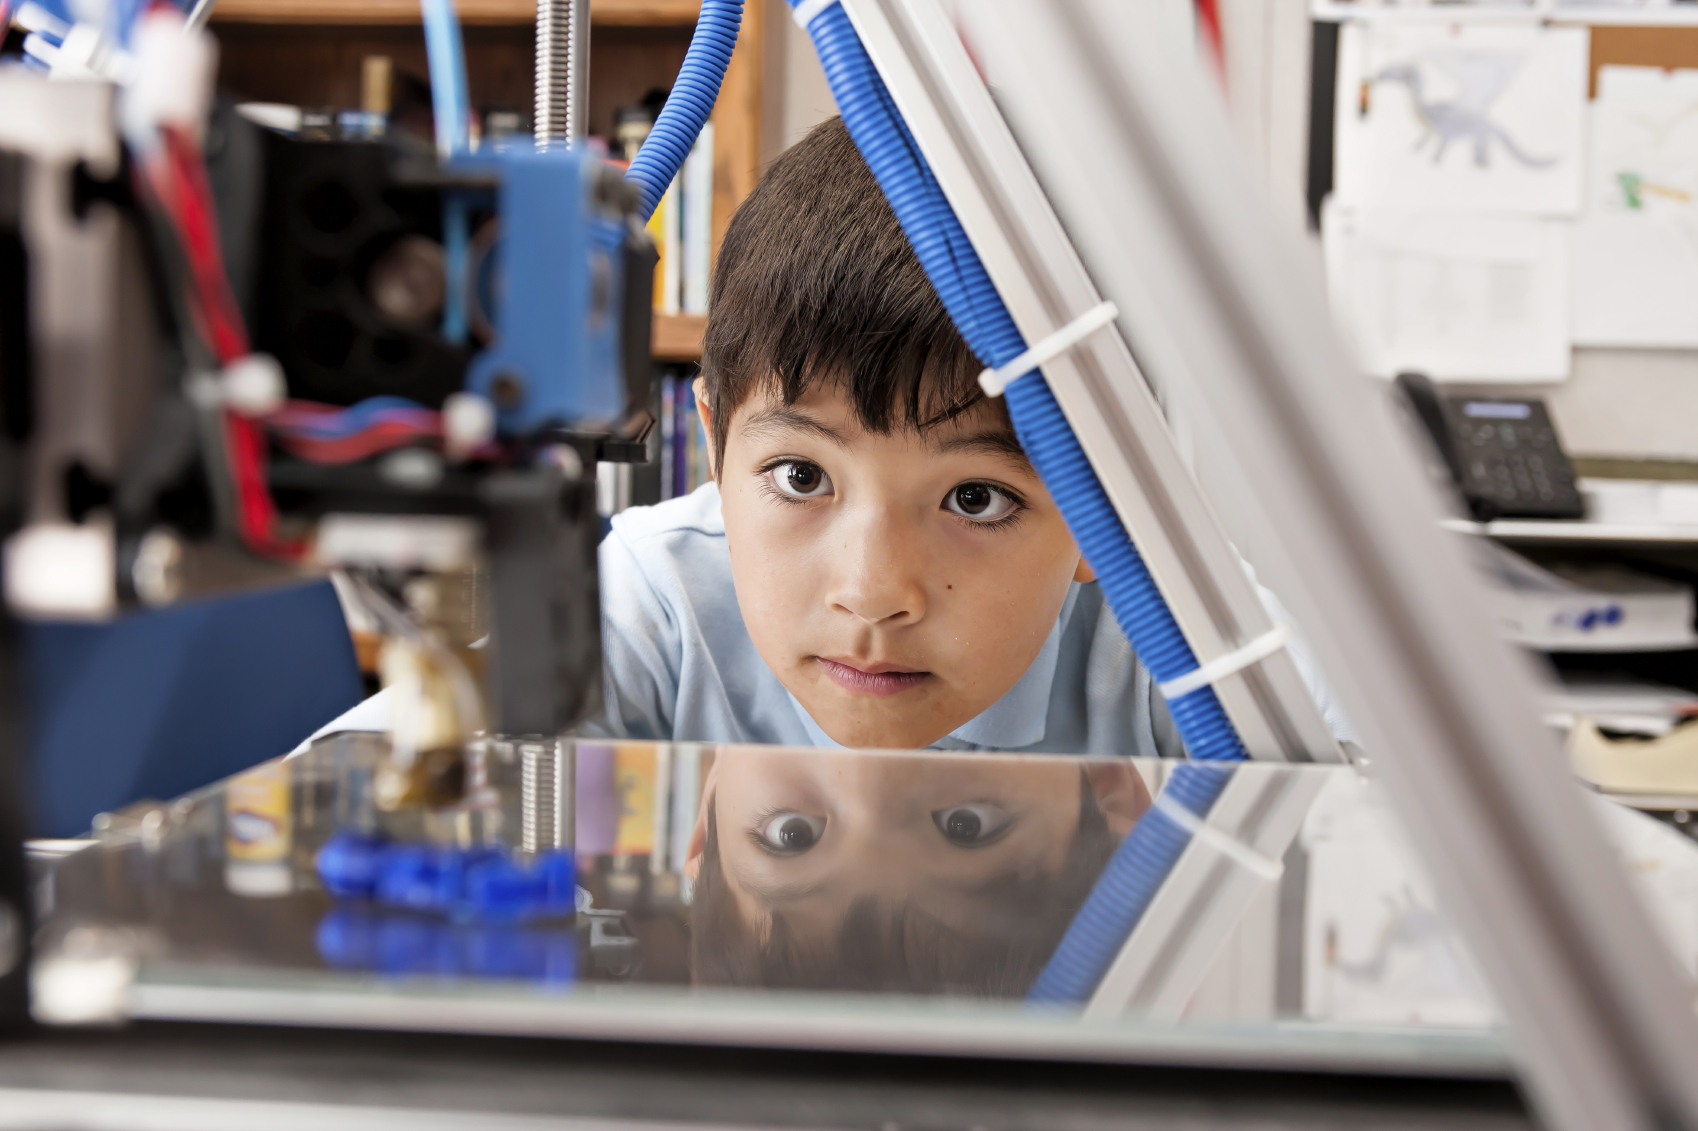 3D Printing is Beginning to Take Hold in UK Schools